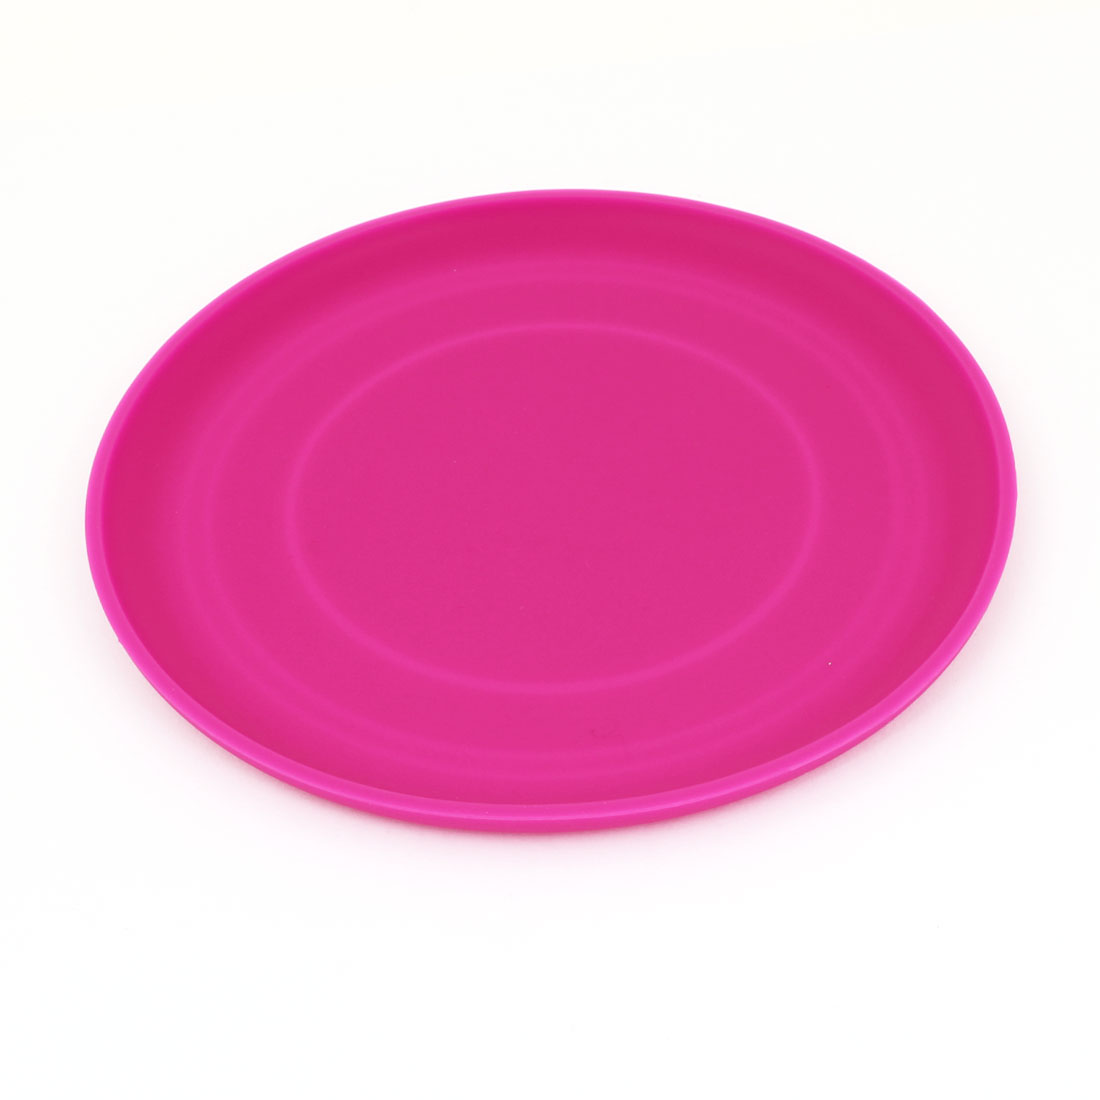 "6.7"" Diameter Fuchsia Silicone Flying Disc Frisbee Toy for Pet Doggie"